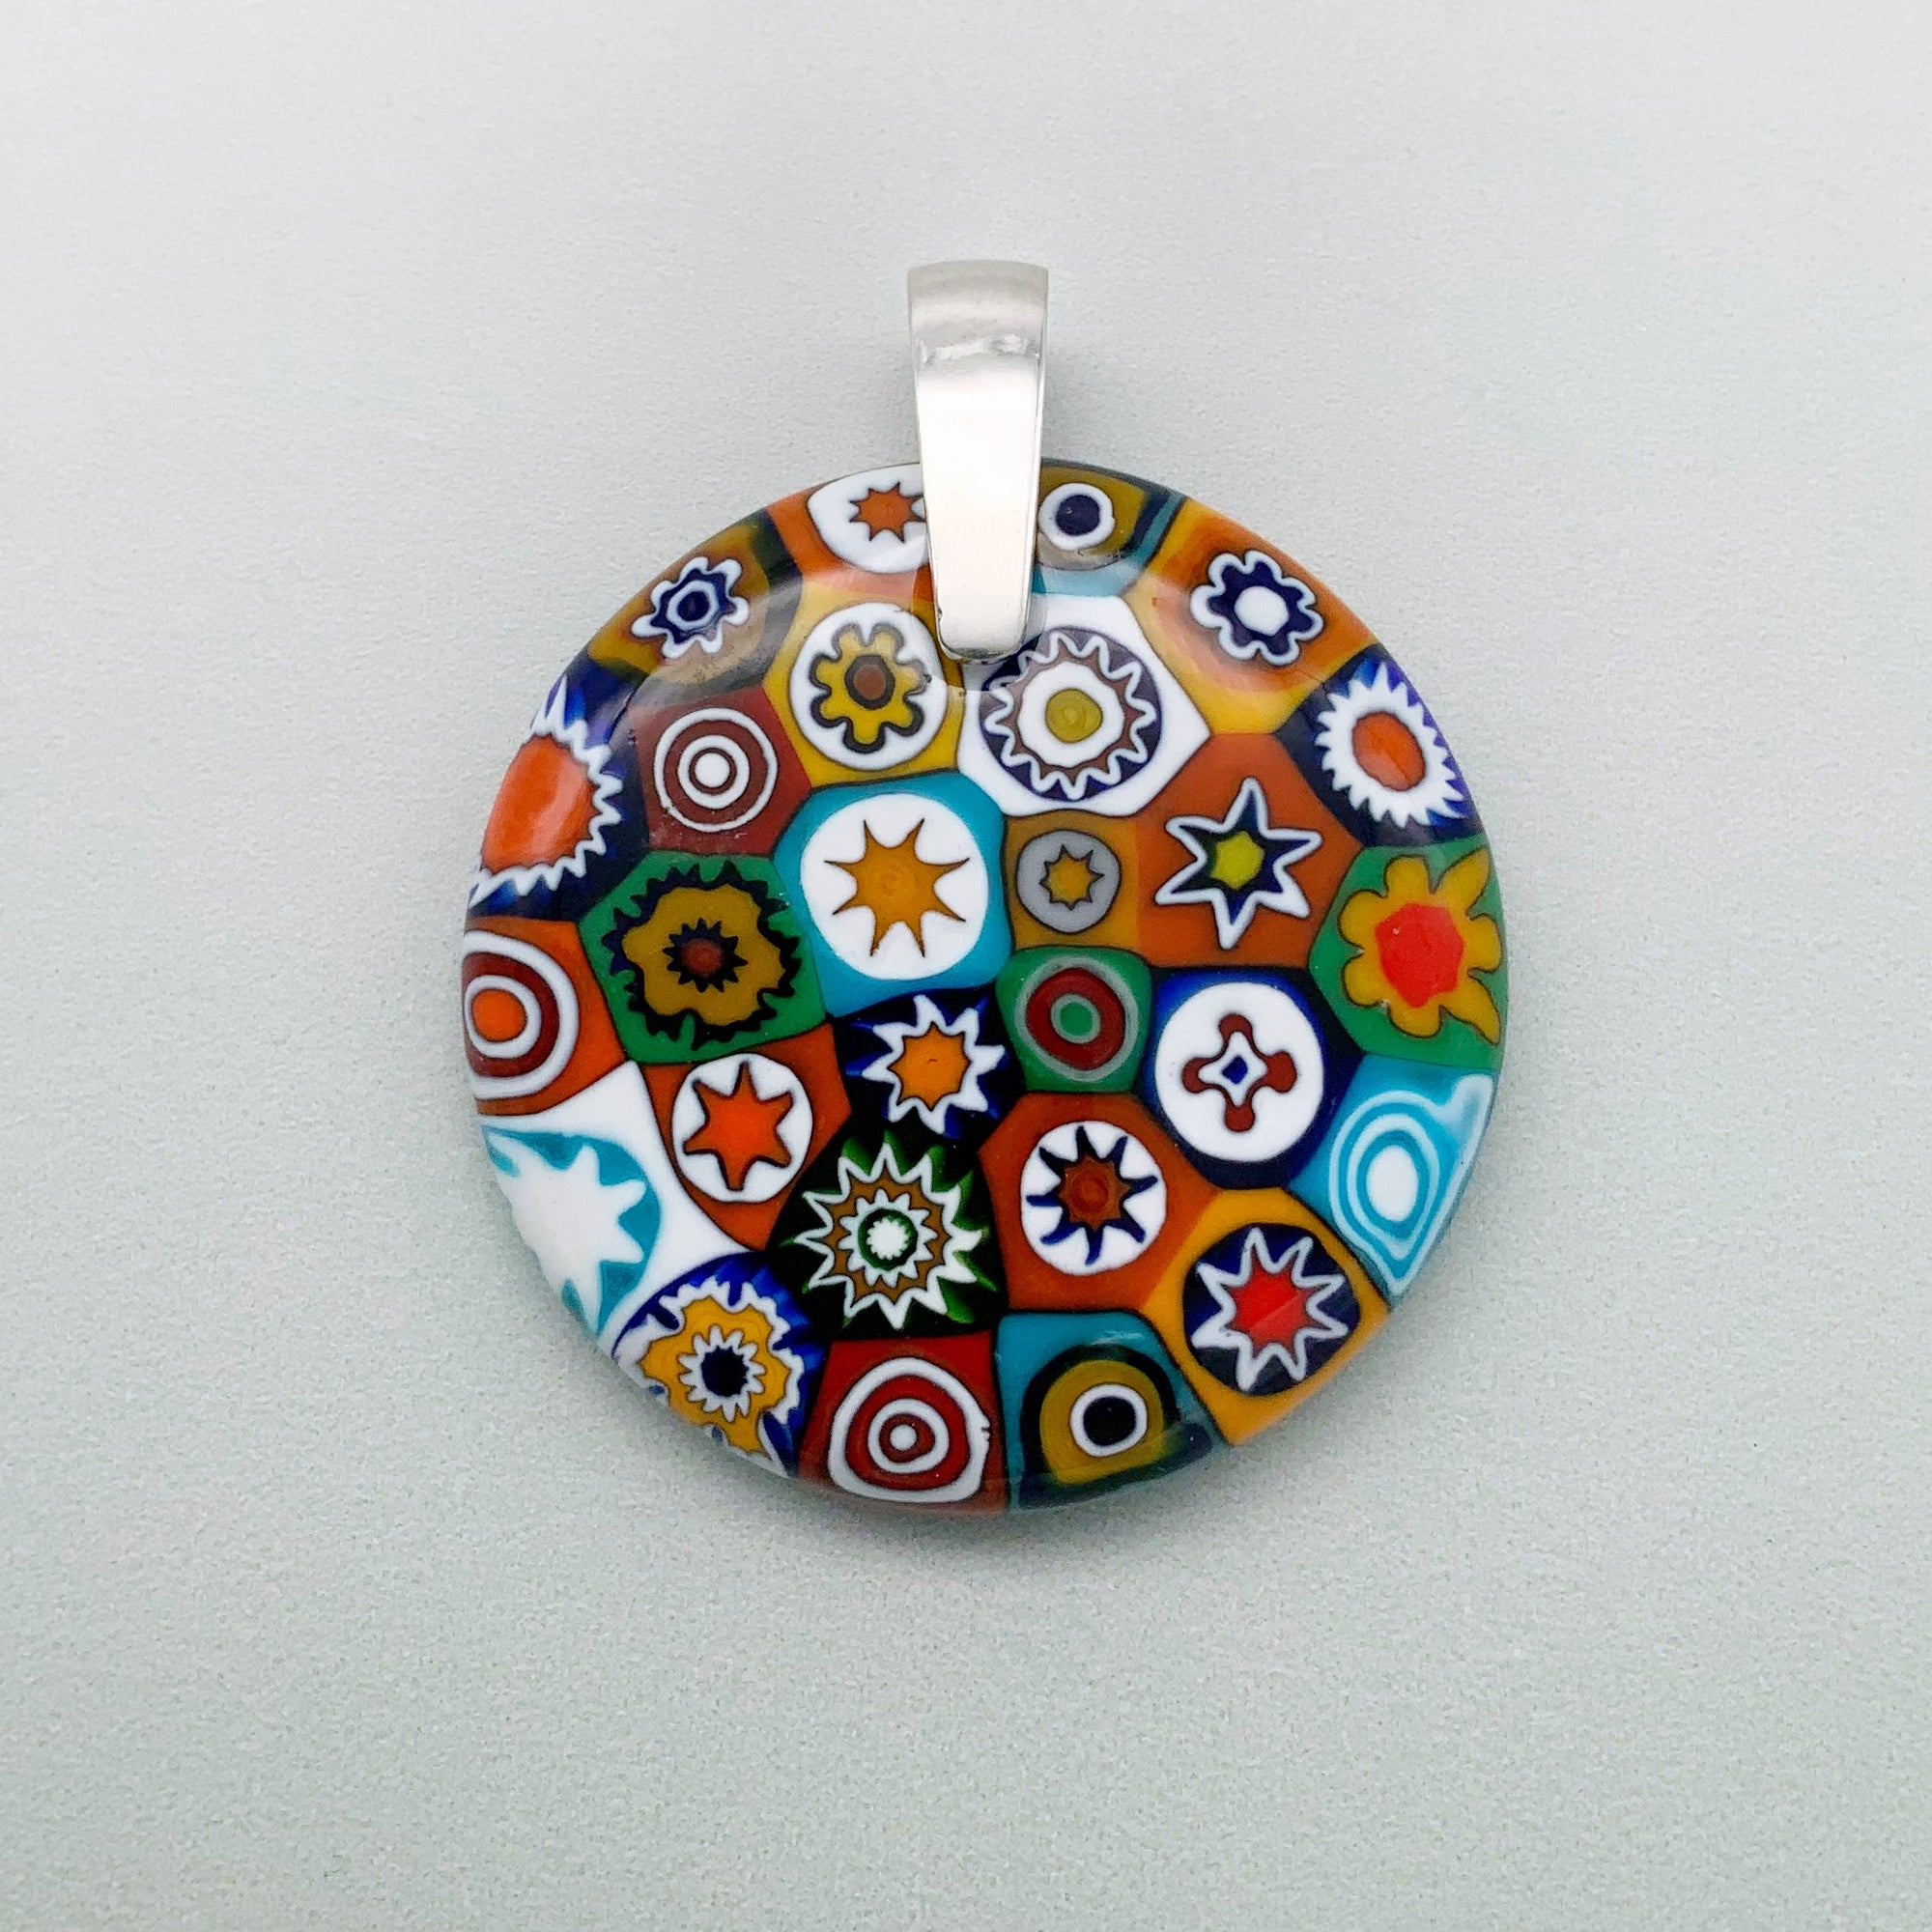 Fused millefiori glass pendant 35mm round with opaque circles, multicolour